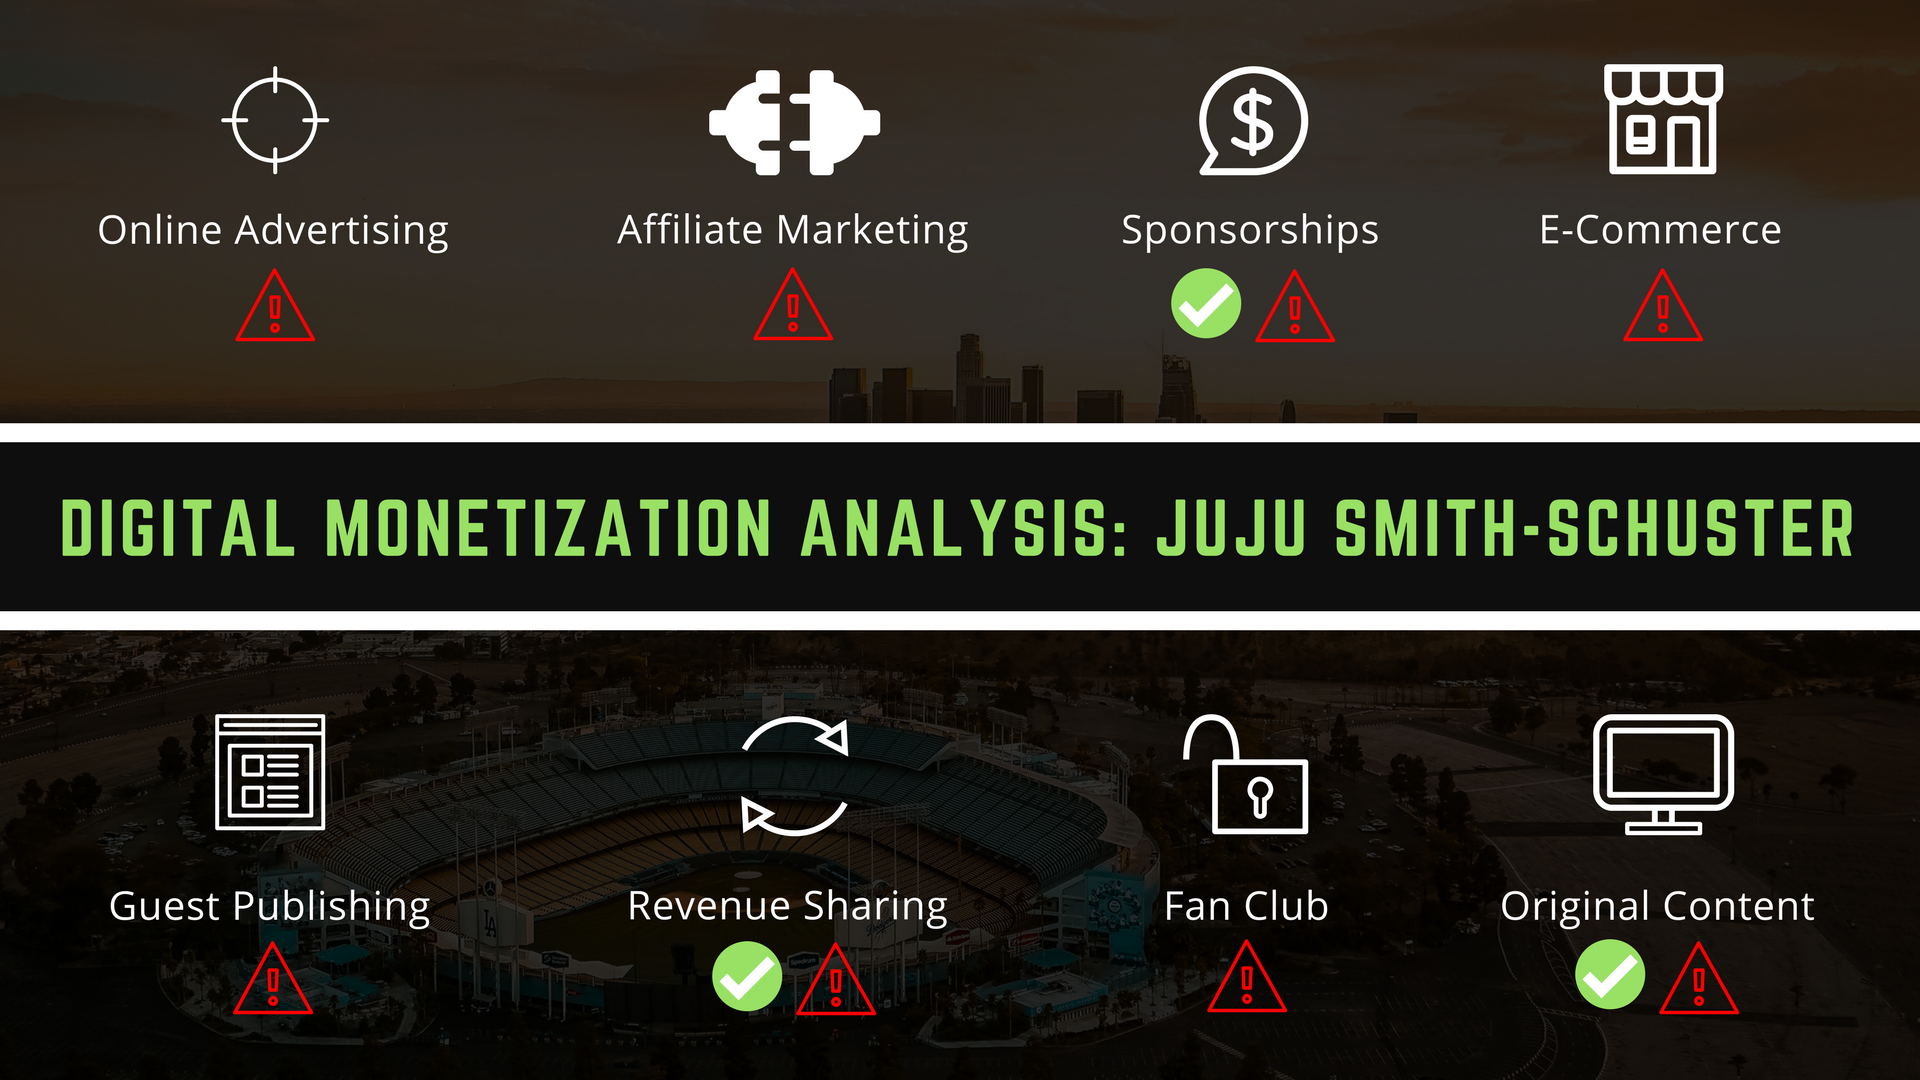 JuJu Smith-Schuster is missing out on at least six of the eight   Internet-based income streams, which can amount to hundreds of thousands of dollars in additional, scalable and in many ways passive income per month.